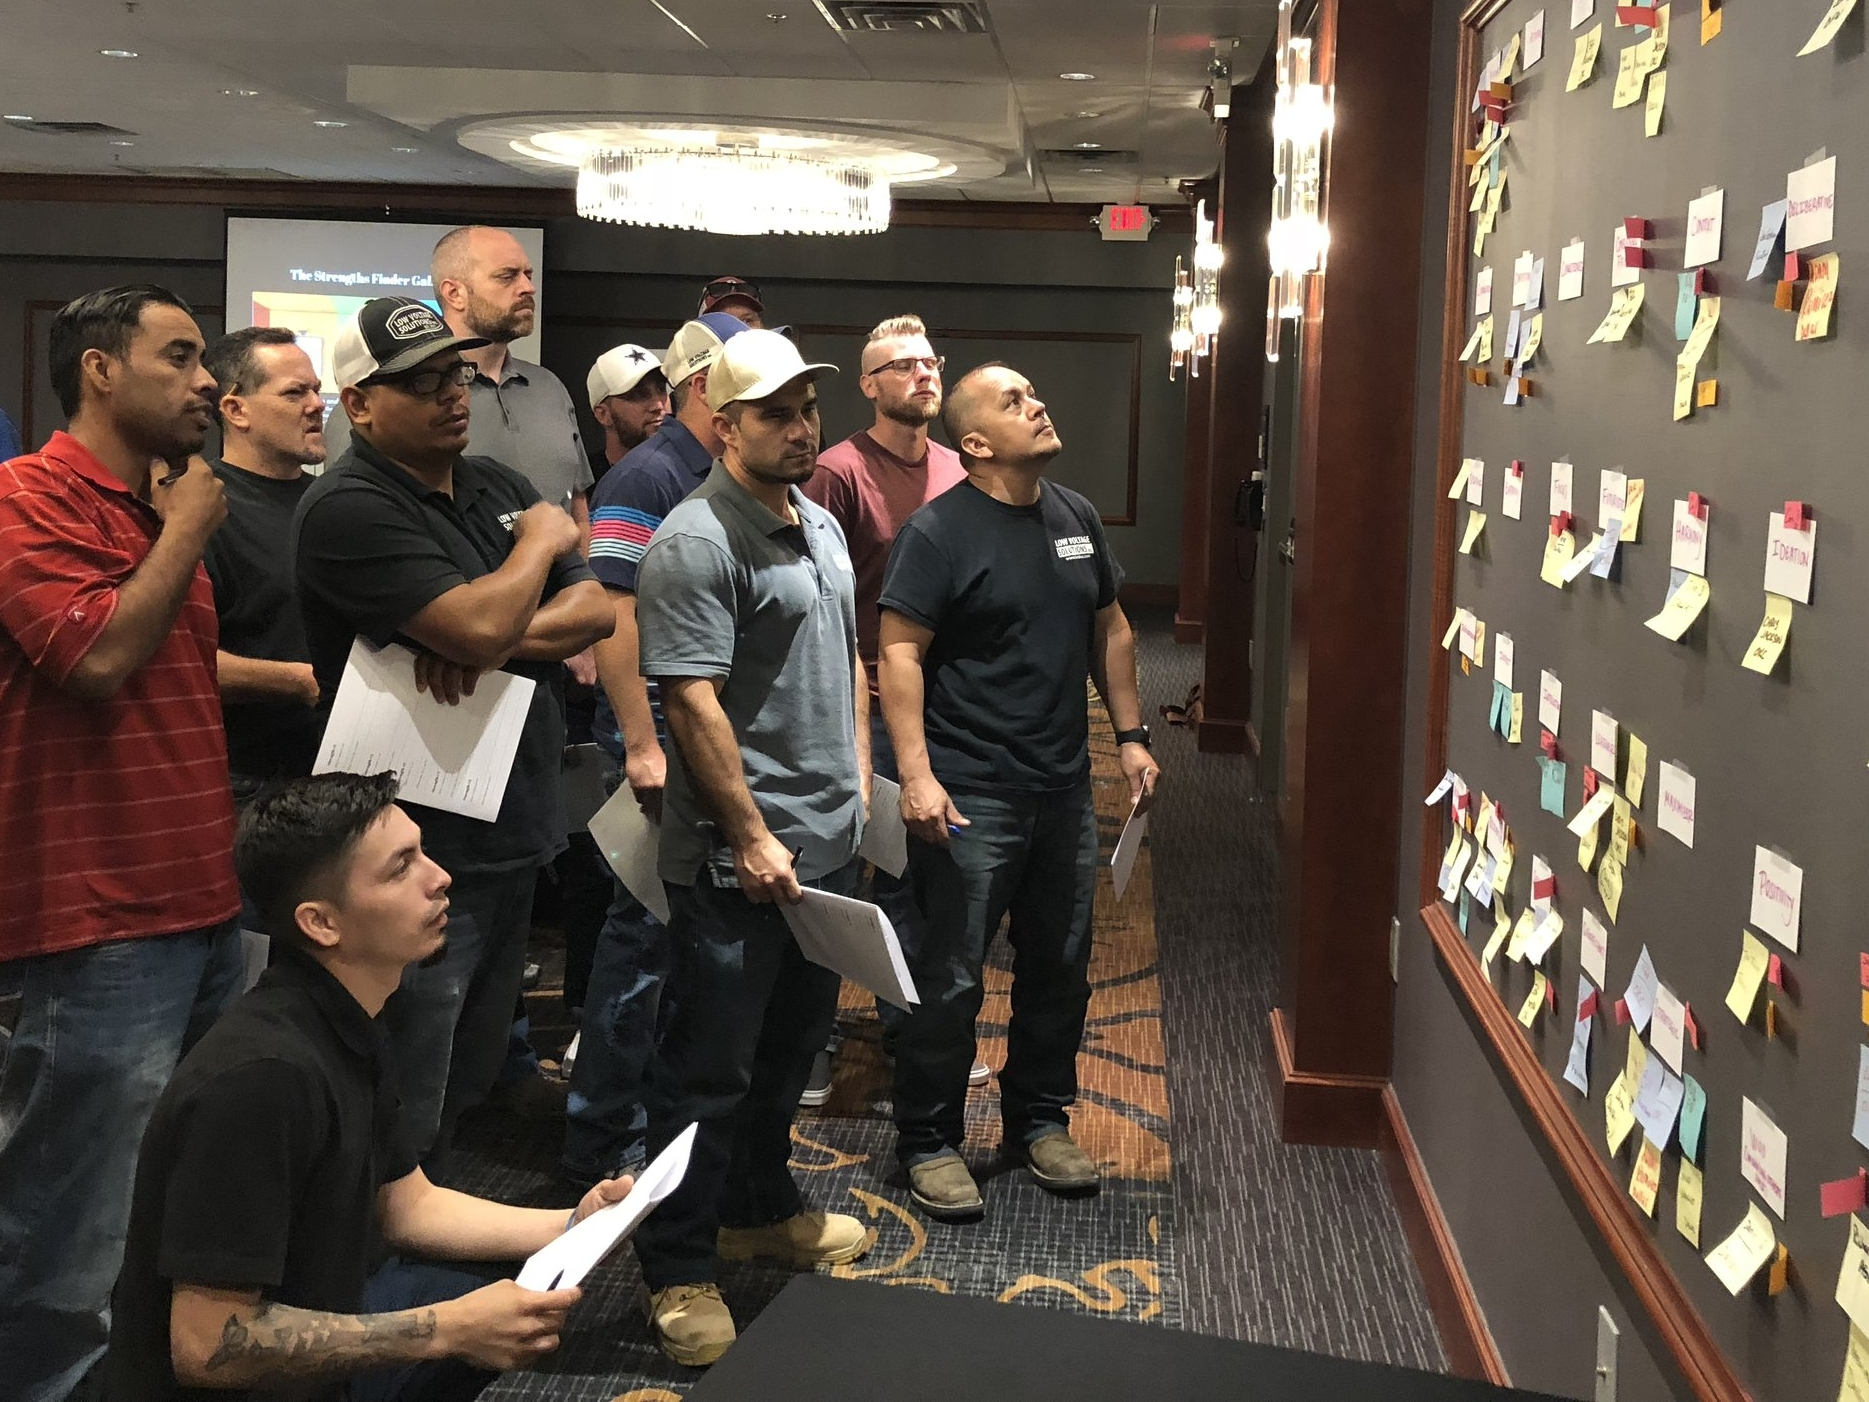 Low Voltage Solutions employees look at a wall of content from their leadership training session.